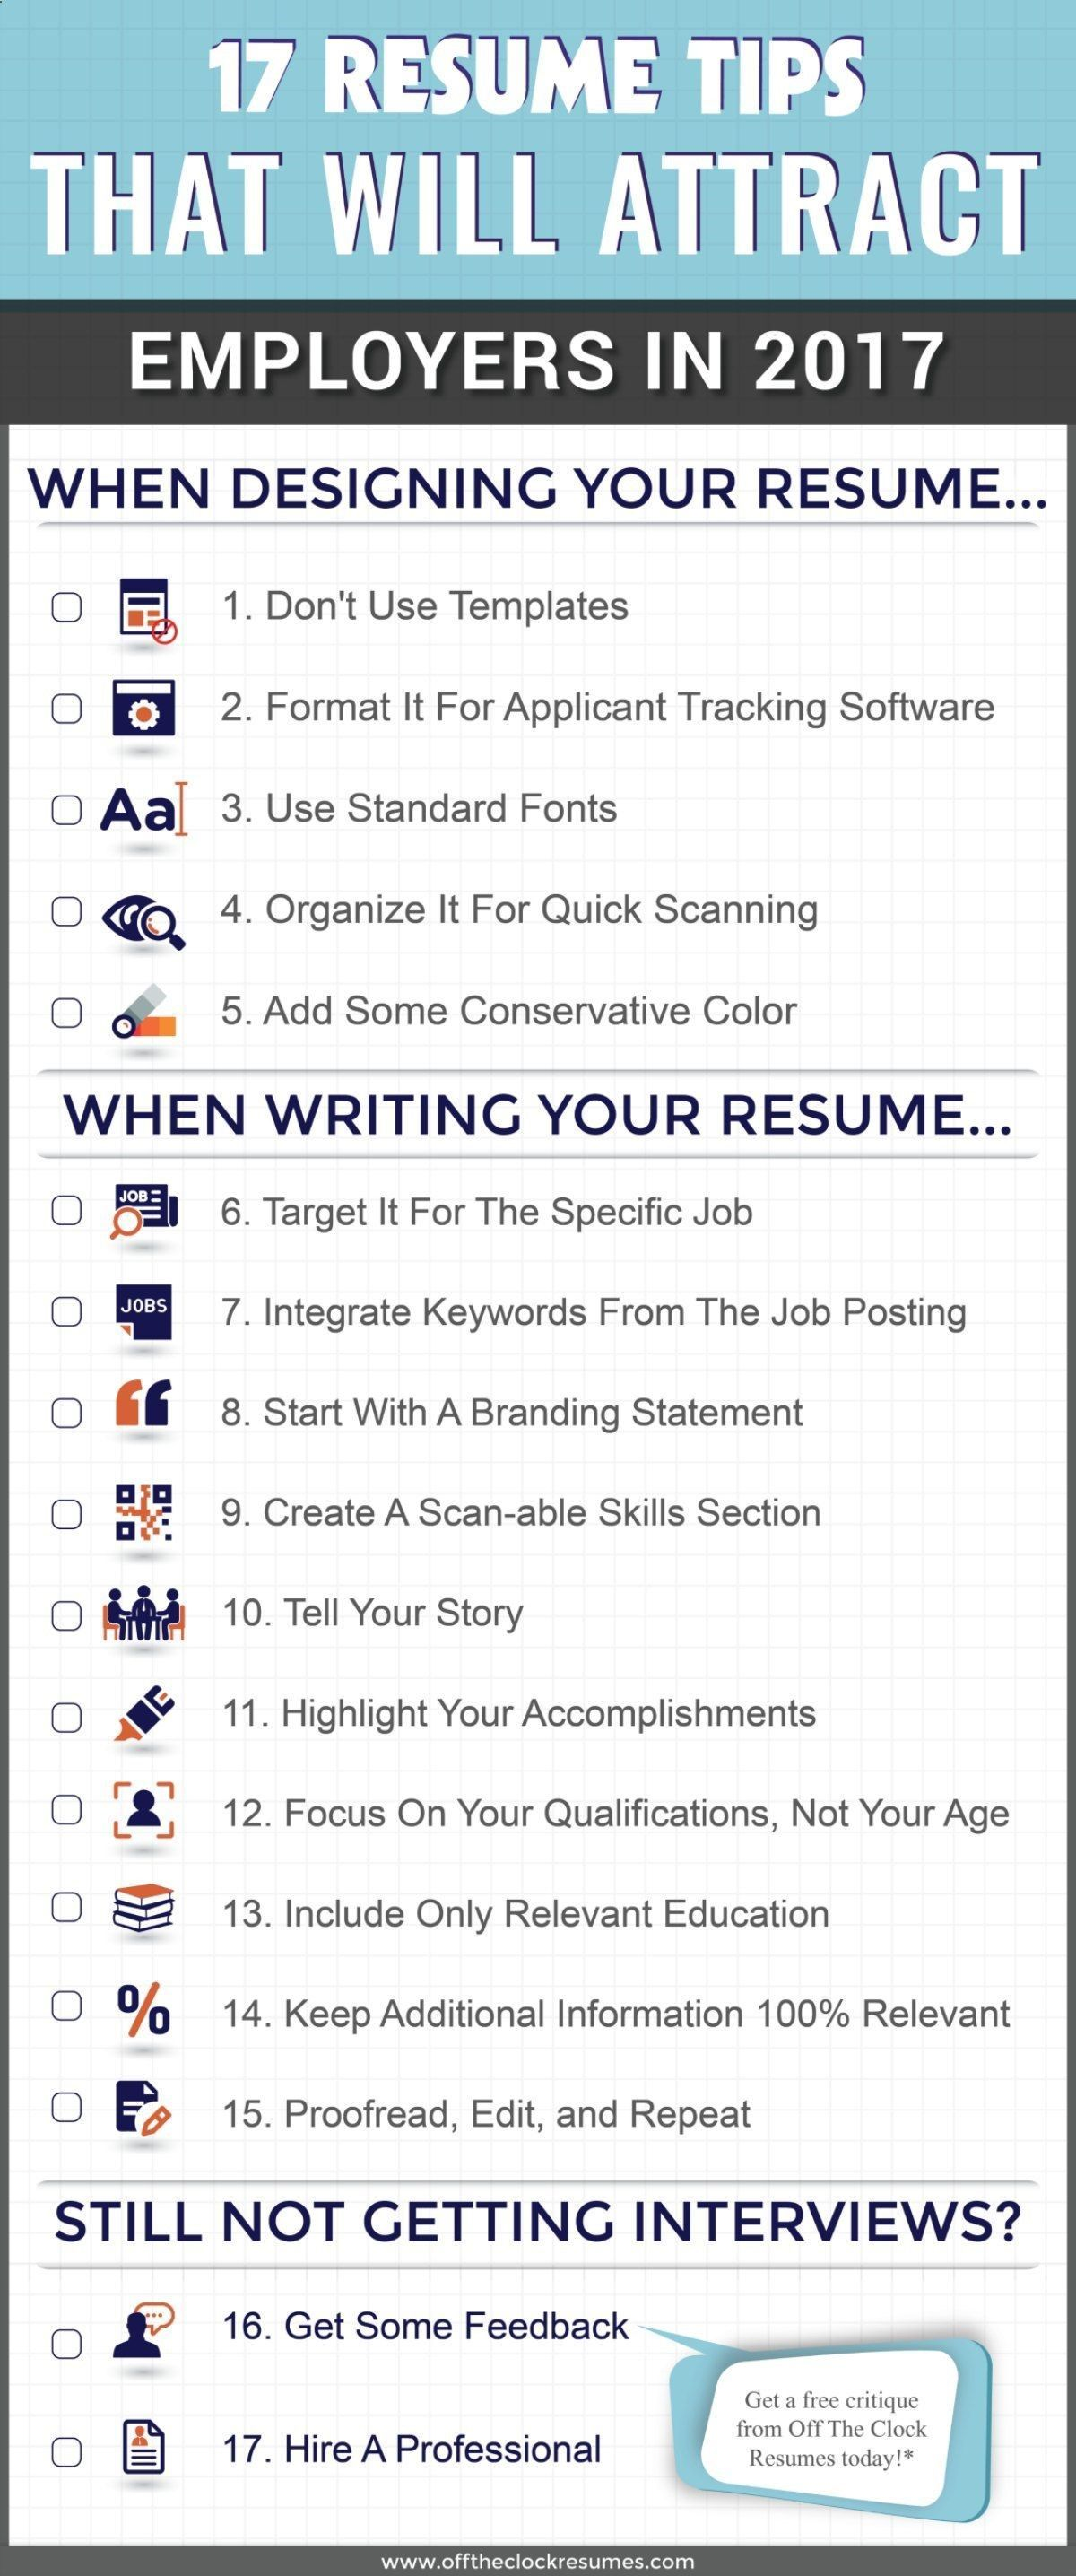 40 resume tips that may help you get the interview